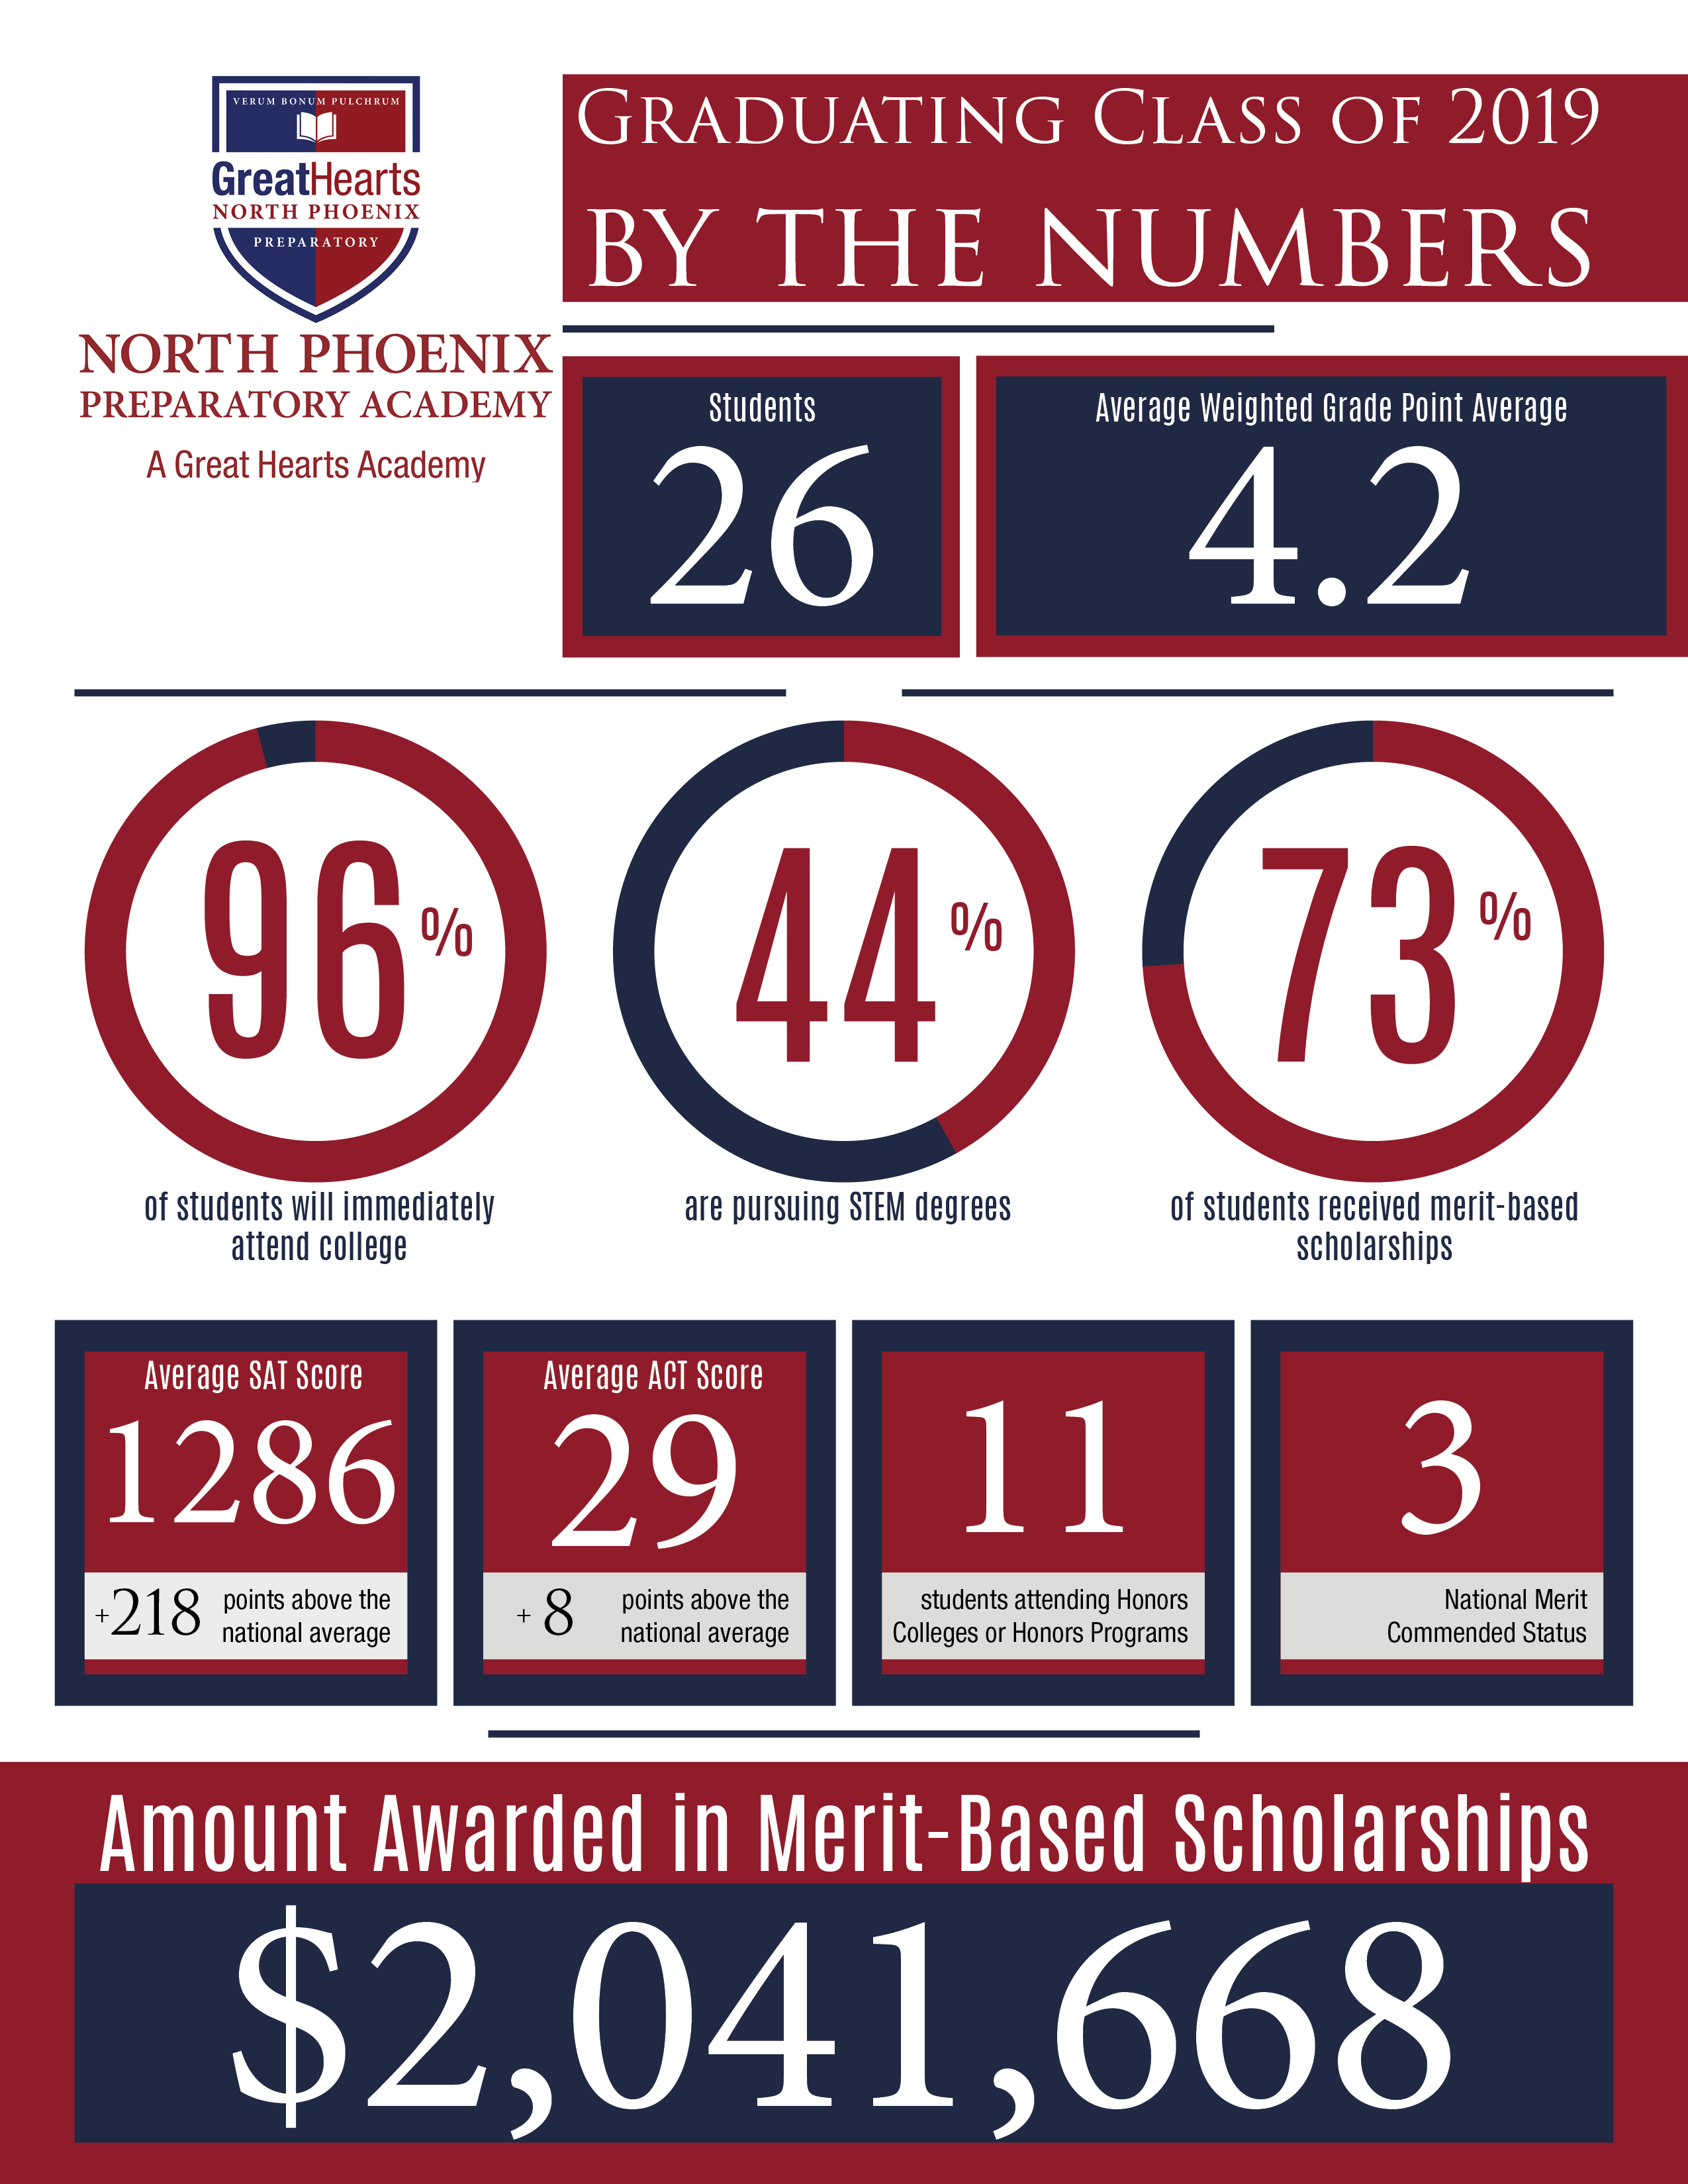 Info graphic, 2 million in scholarships